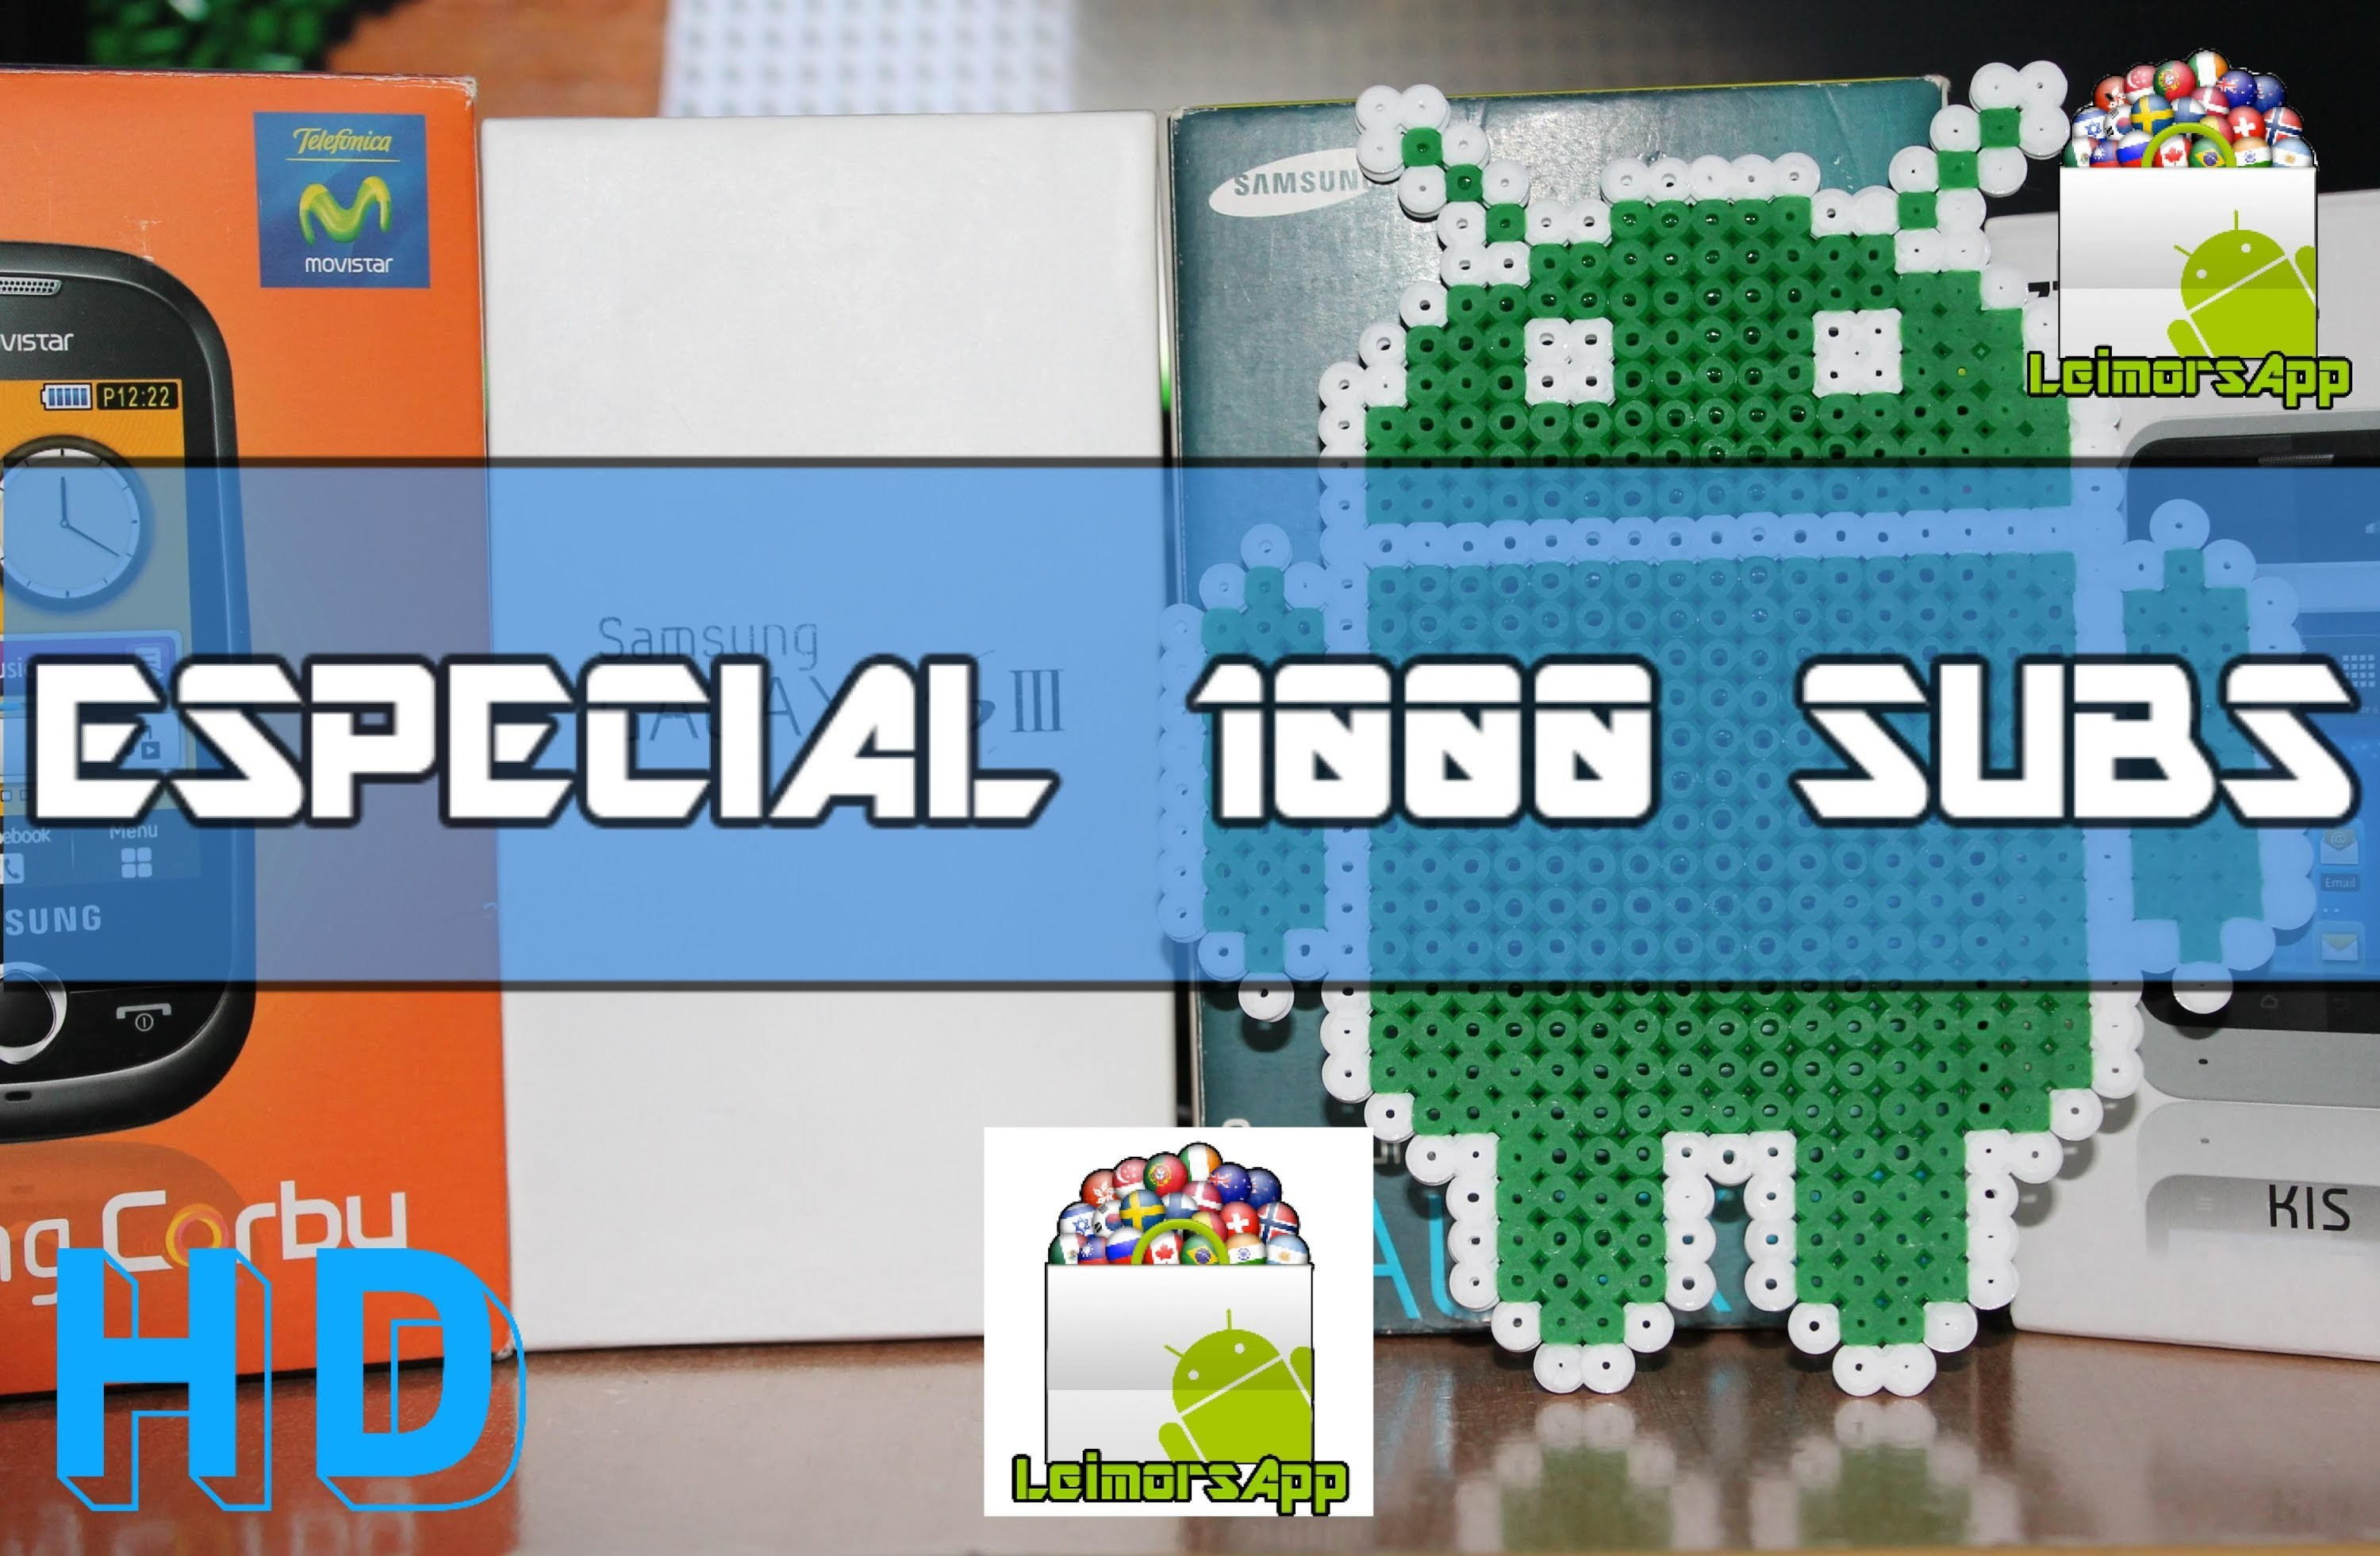 ESPECIAL 1000 SUBS. AGRADECIMIENTOS + ANDROID HAMA BEADS  =D